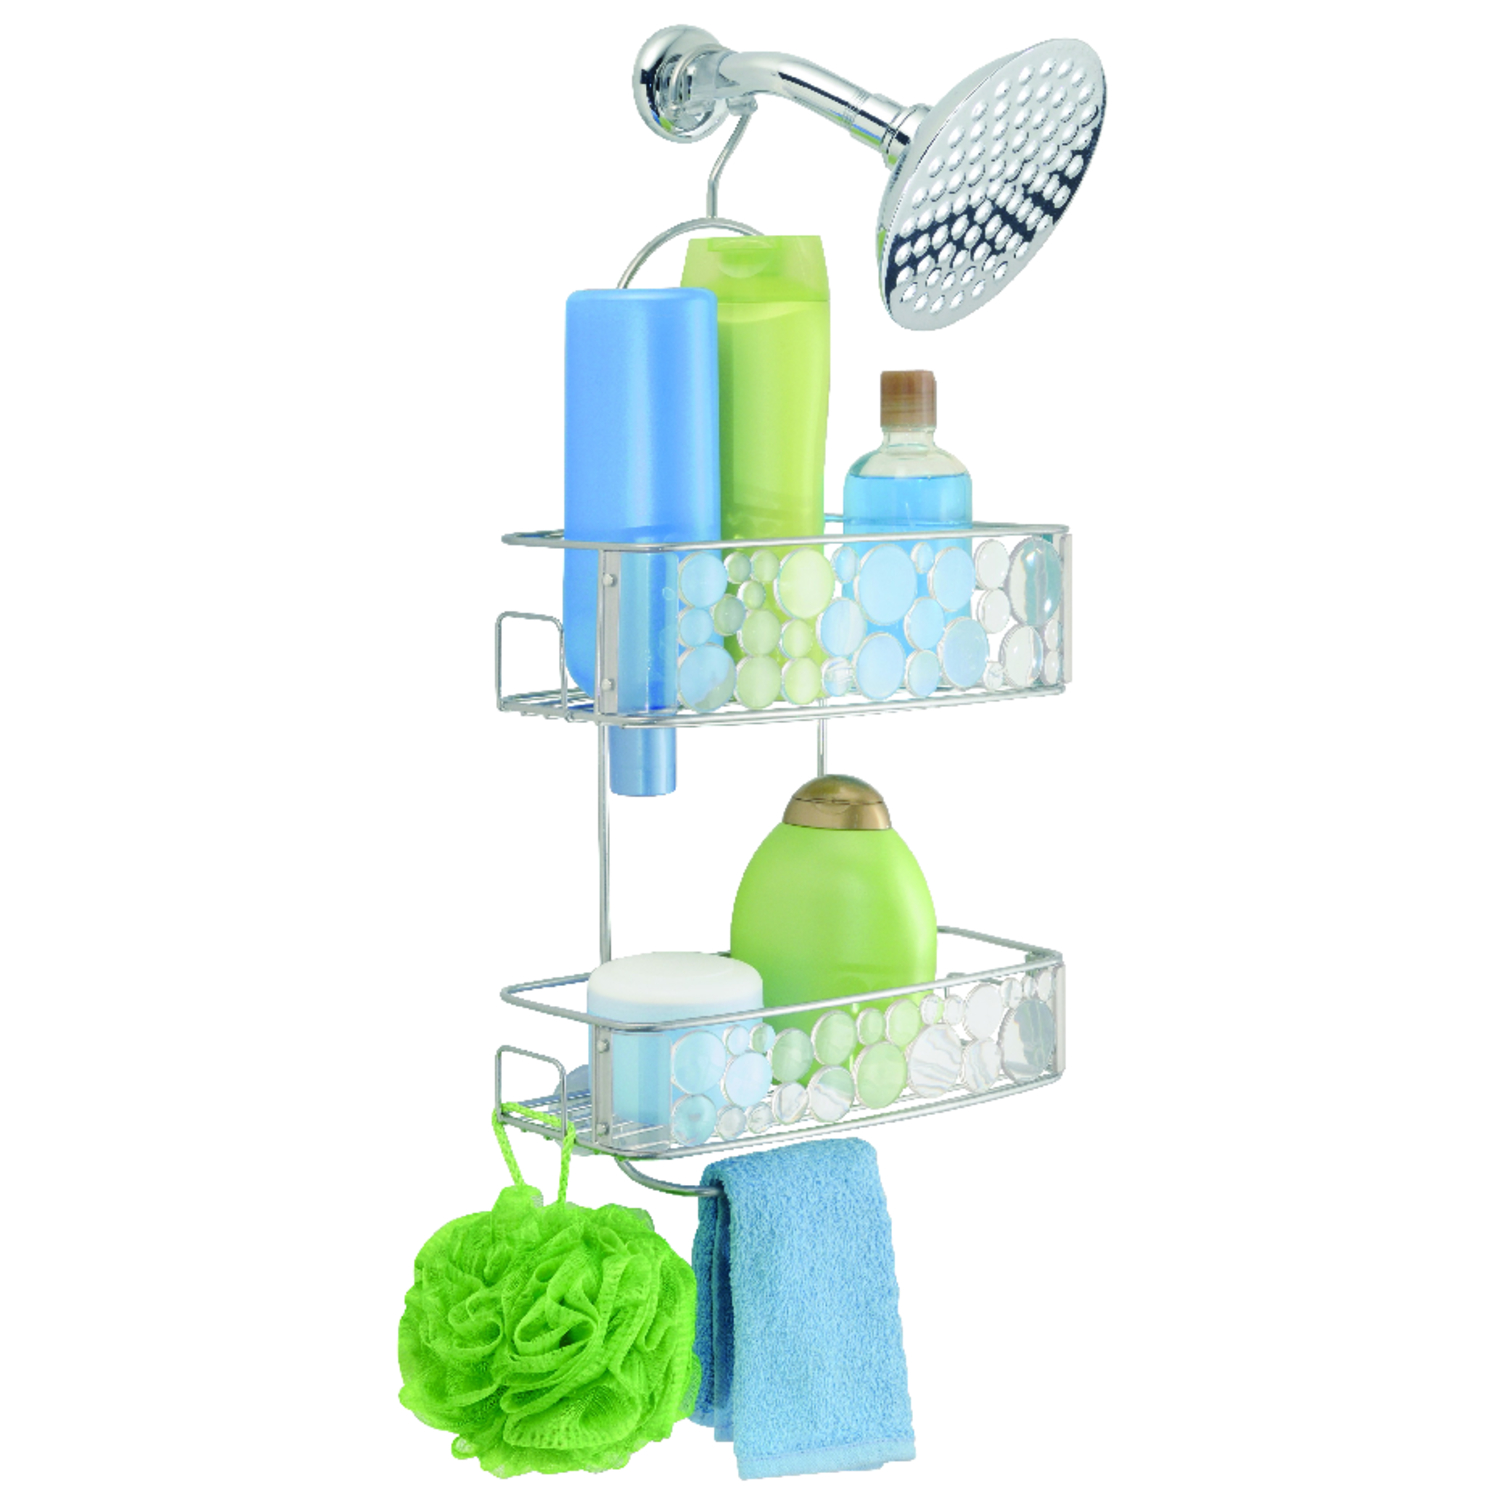 InterDesign  Shower Caddy  10.3 in. W x 5.5 in. L x 21.8 in. H Clear  Stainless Steel  Metal